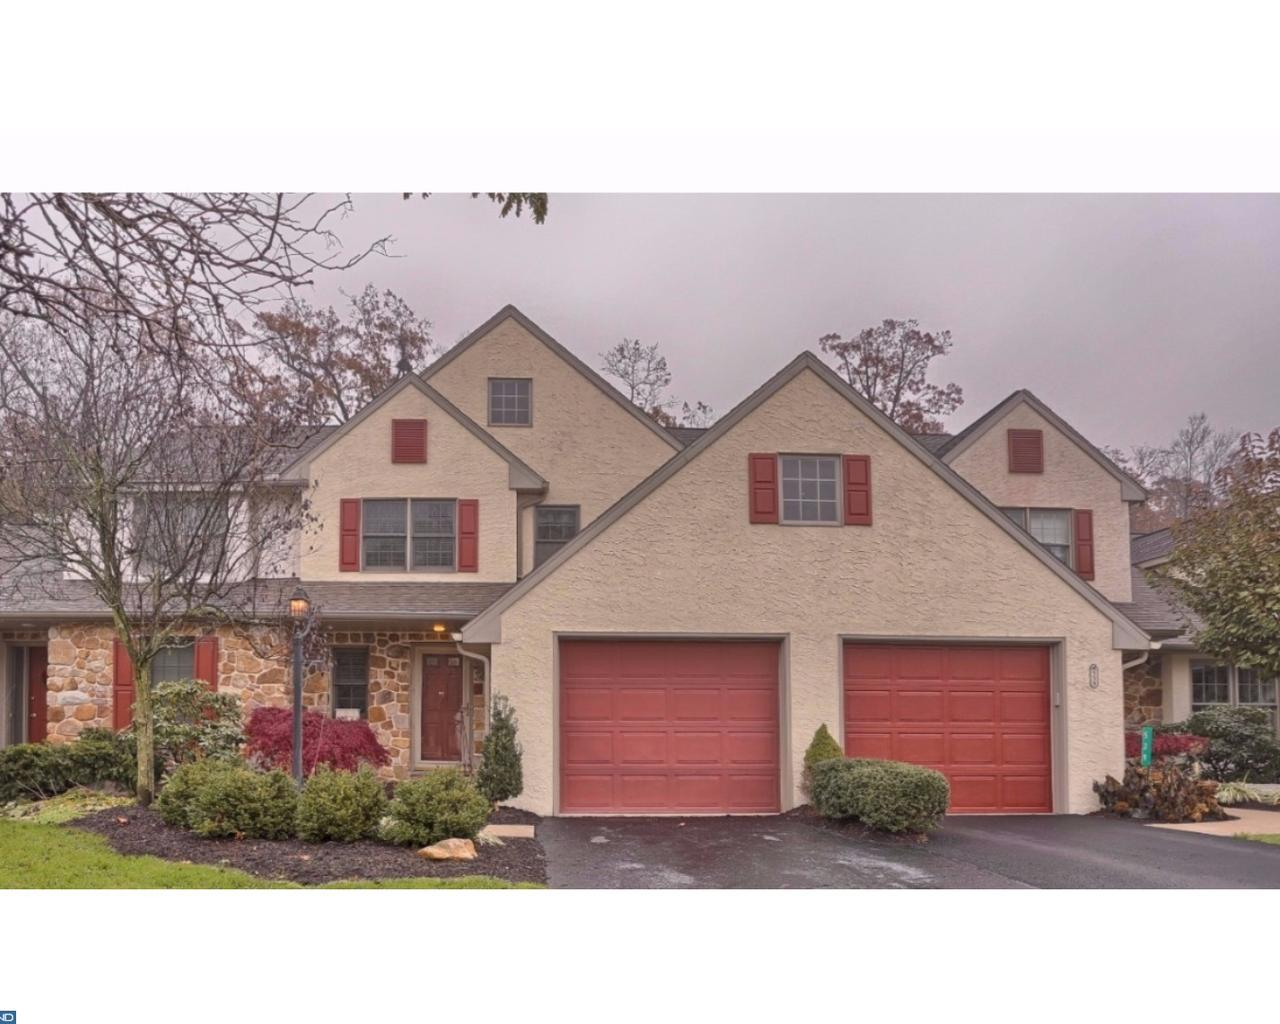 541 kennelwoods dr elverson pa mls 7083742 better